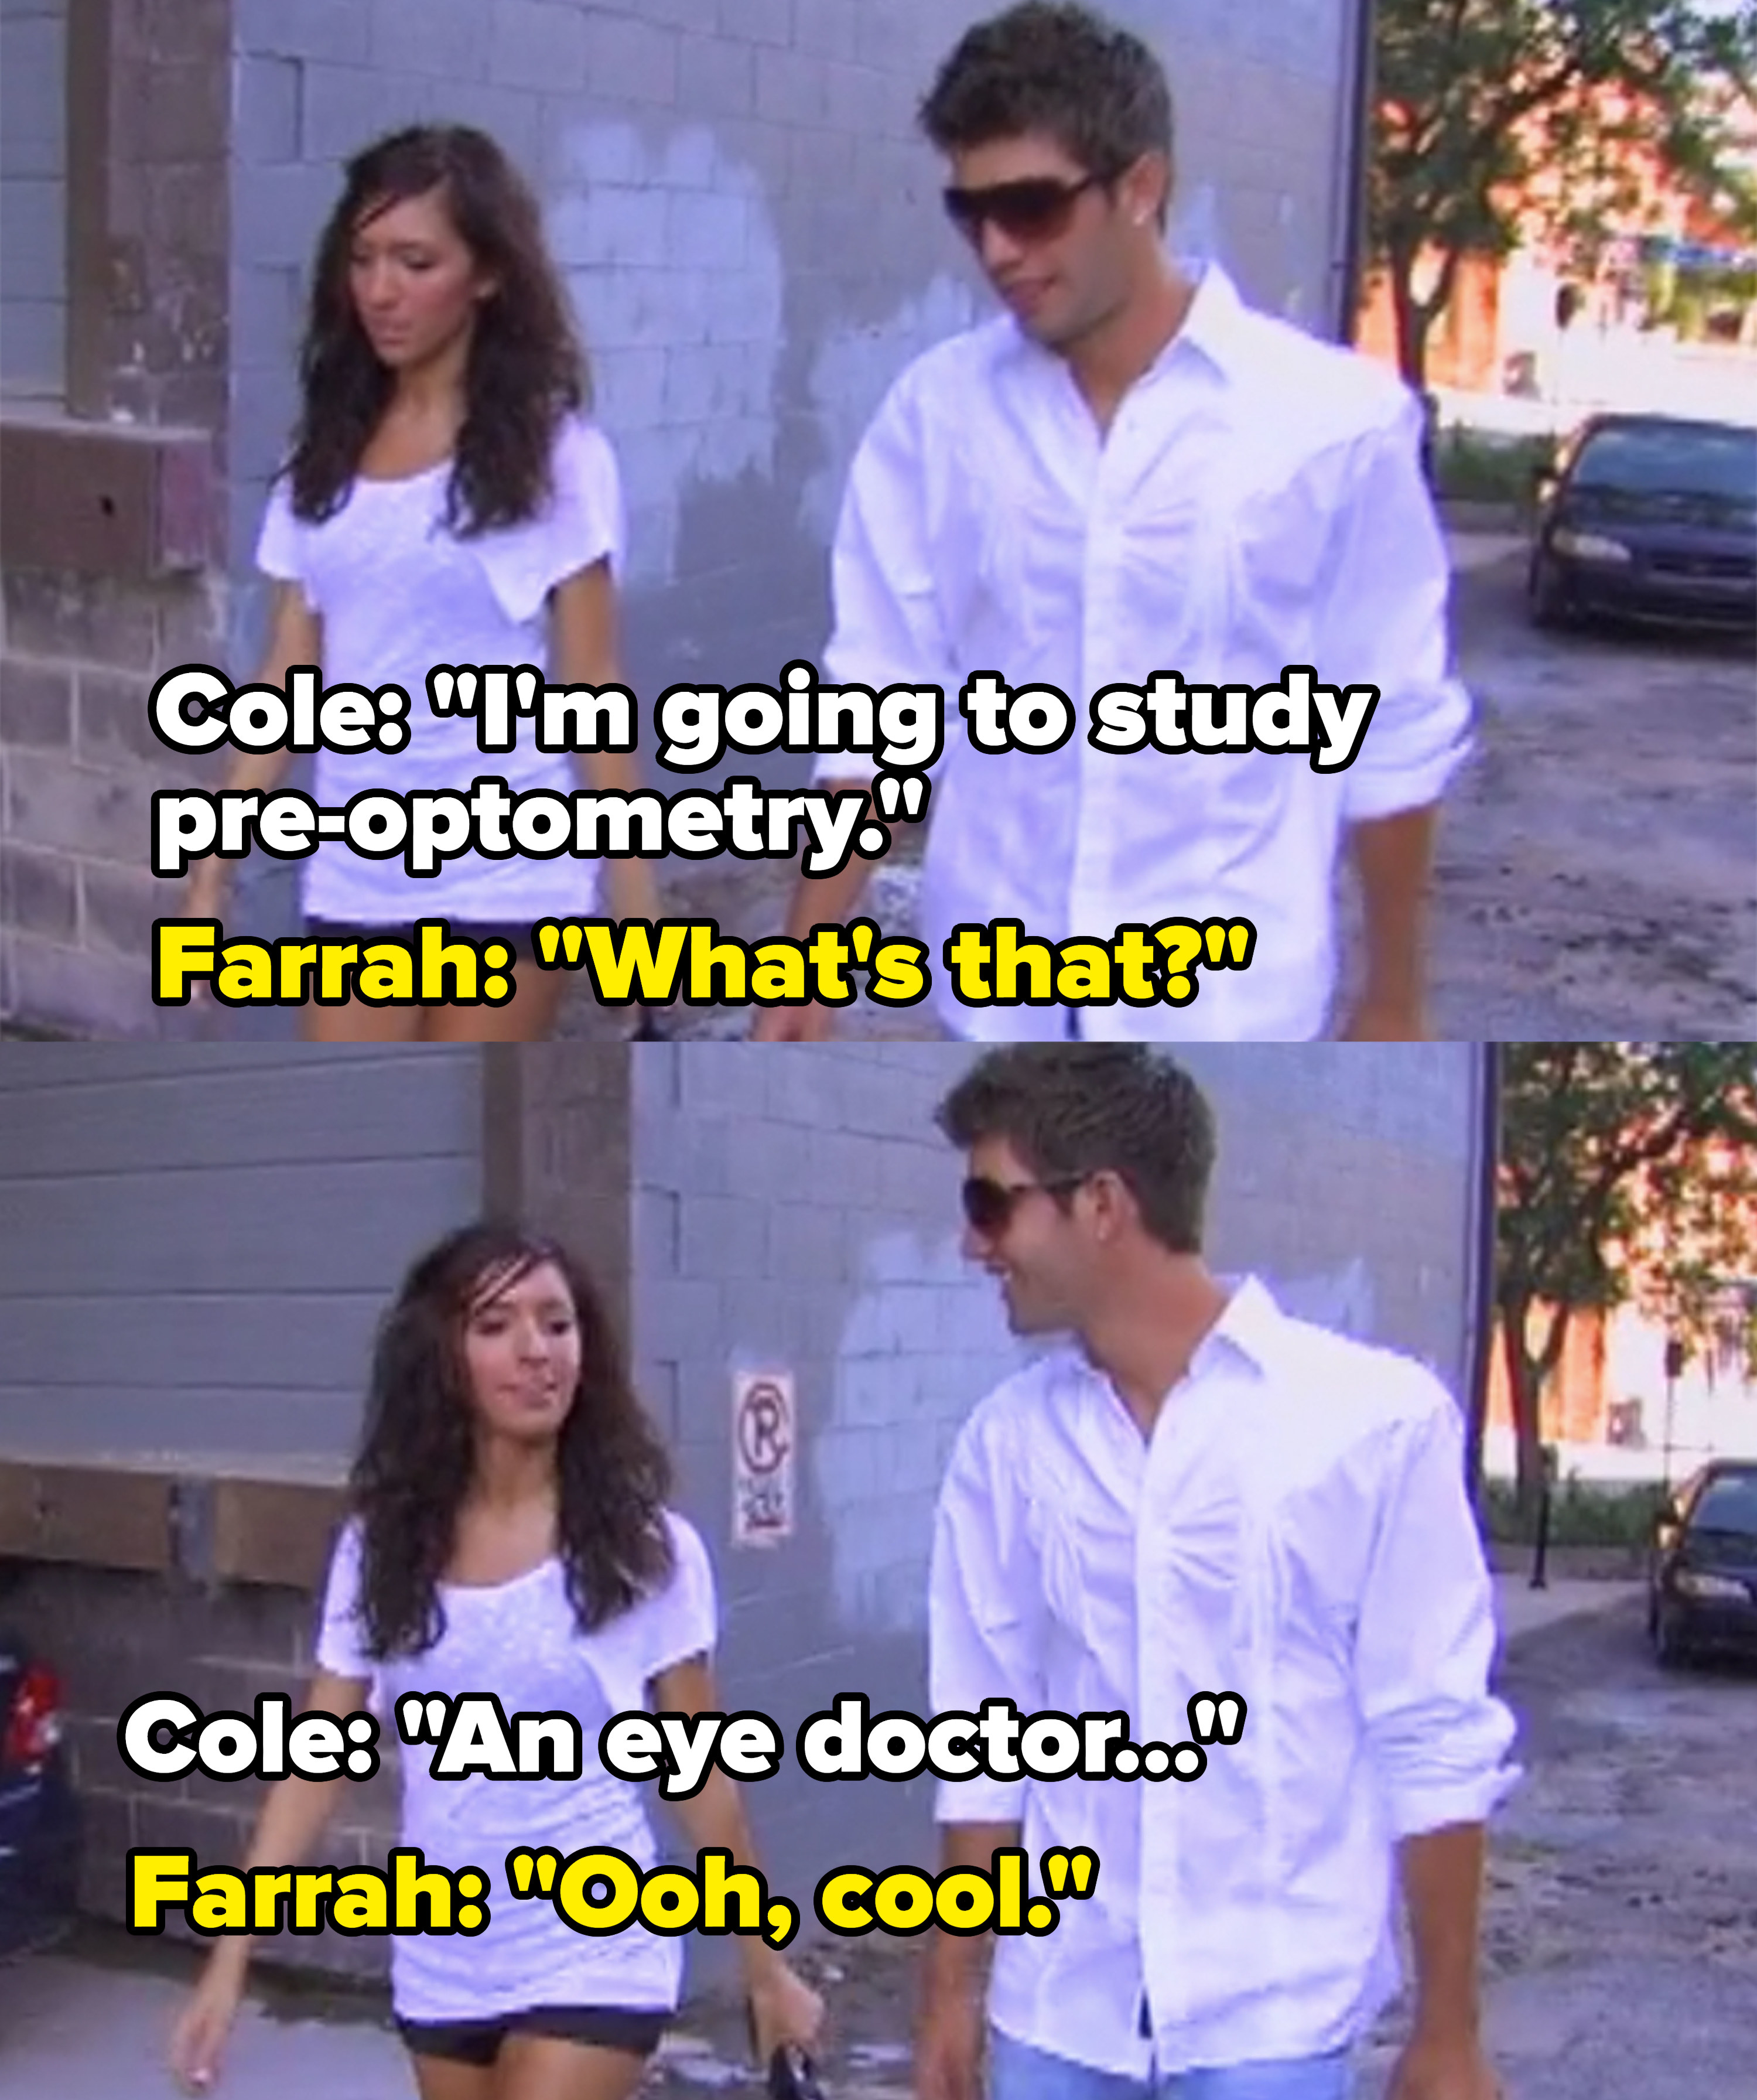 Cole says he's studying to become an optometrist and Farrah asks what that means